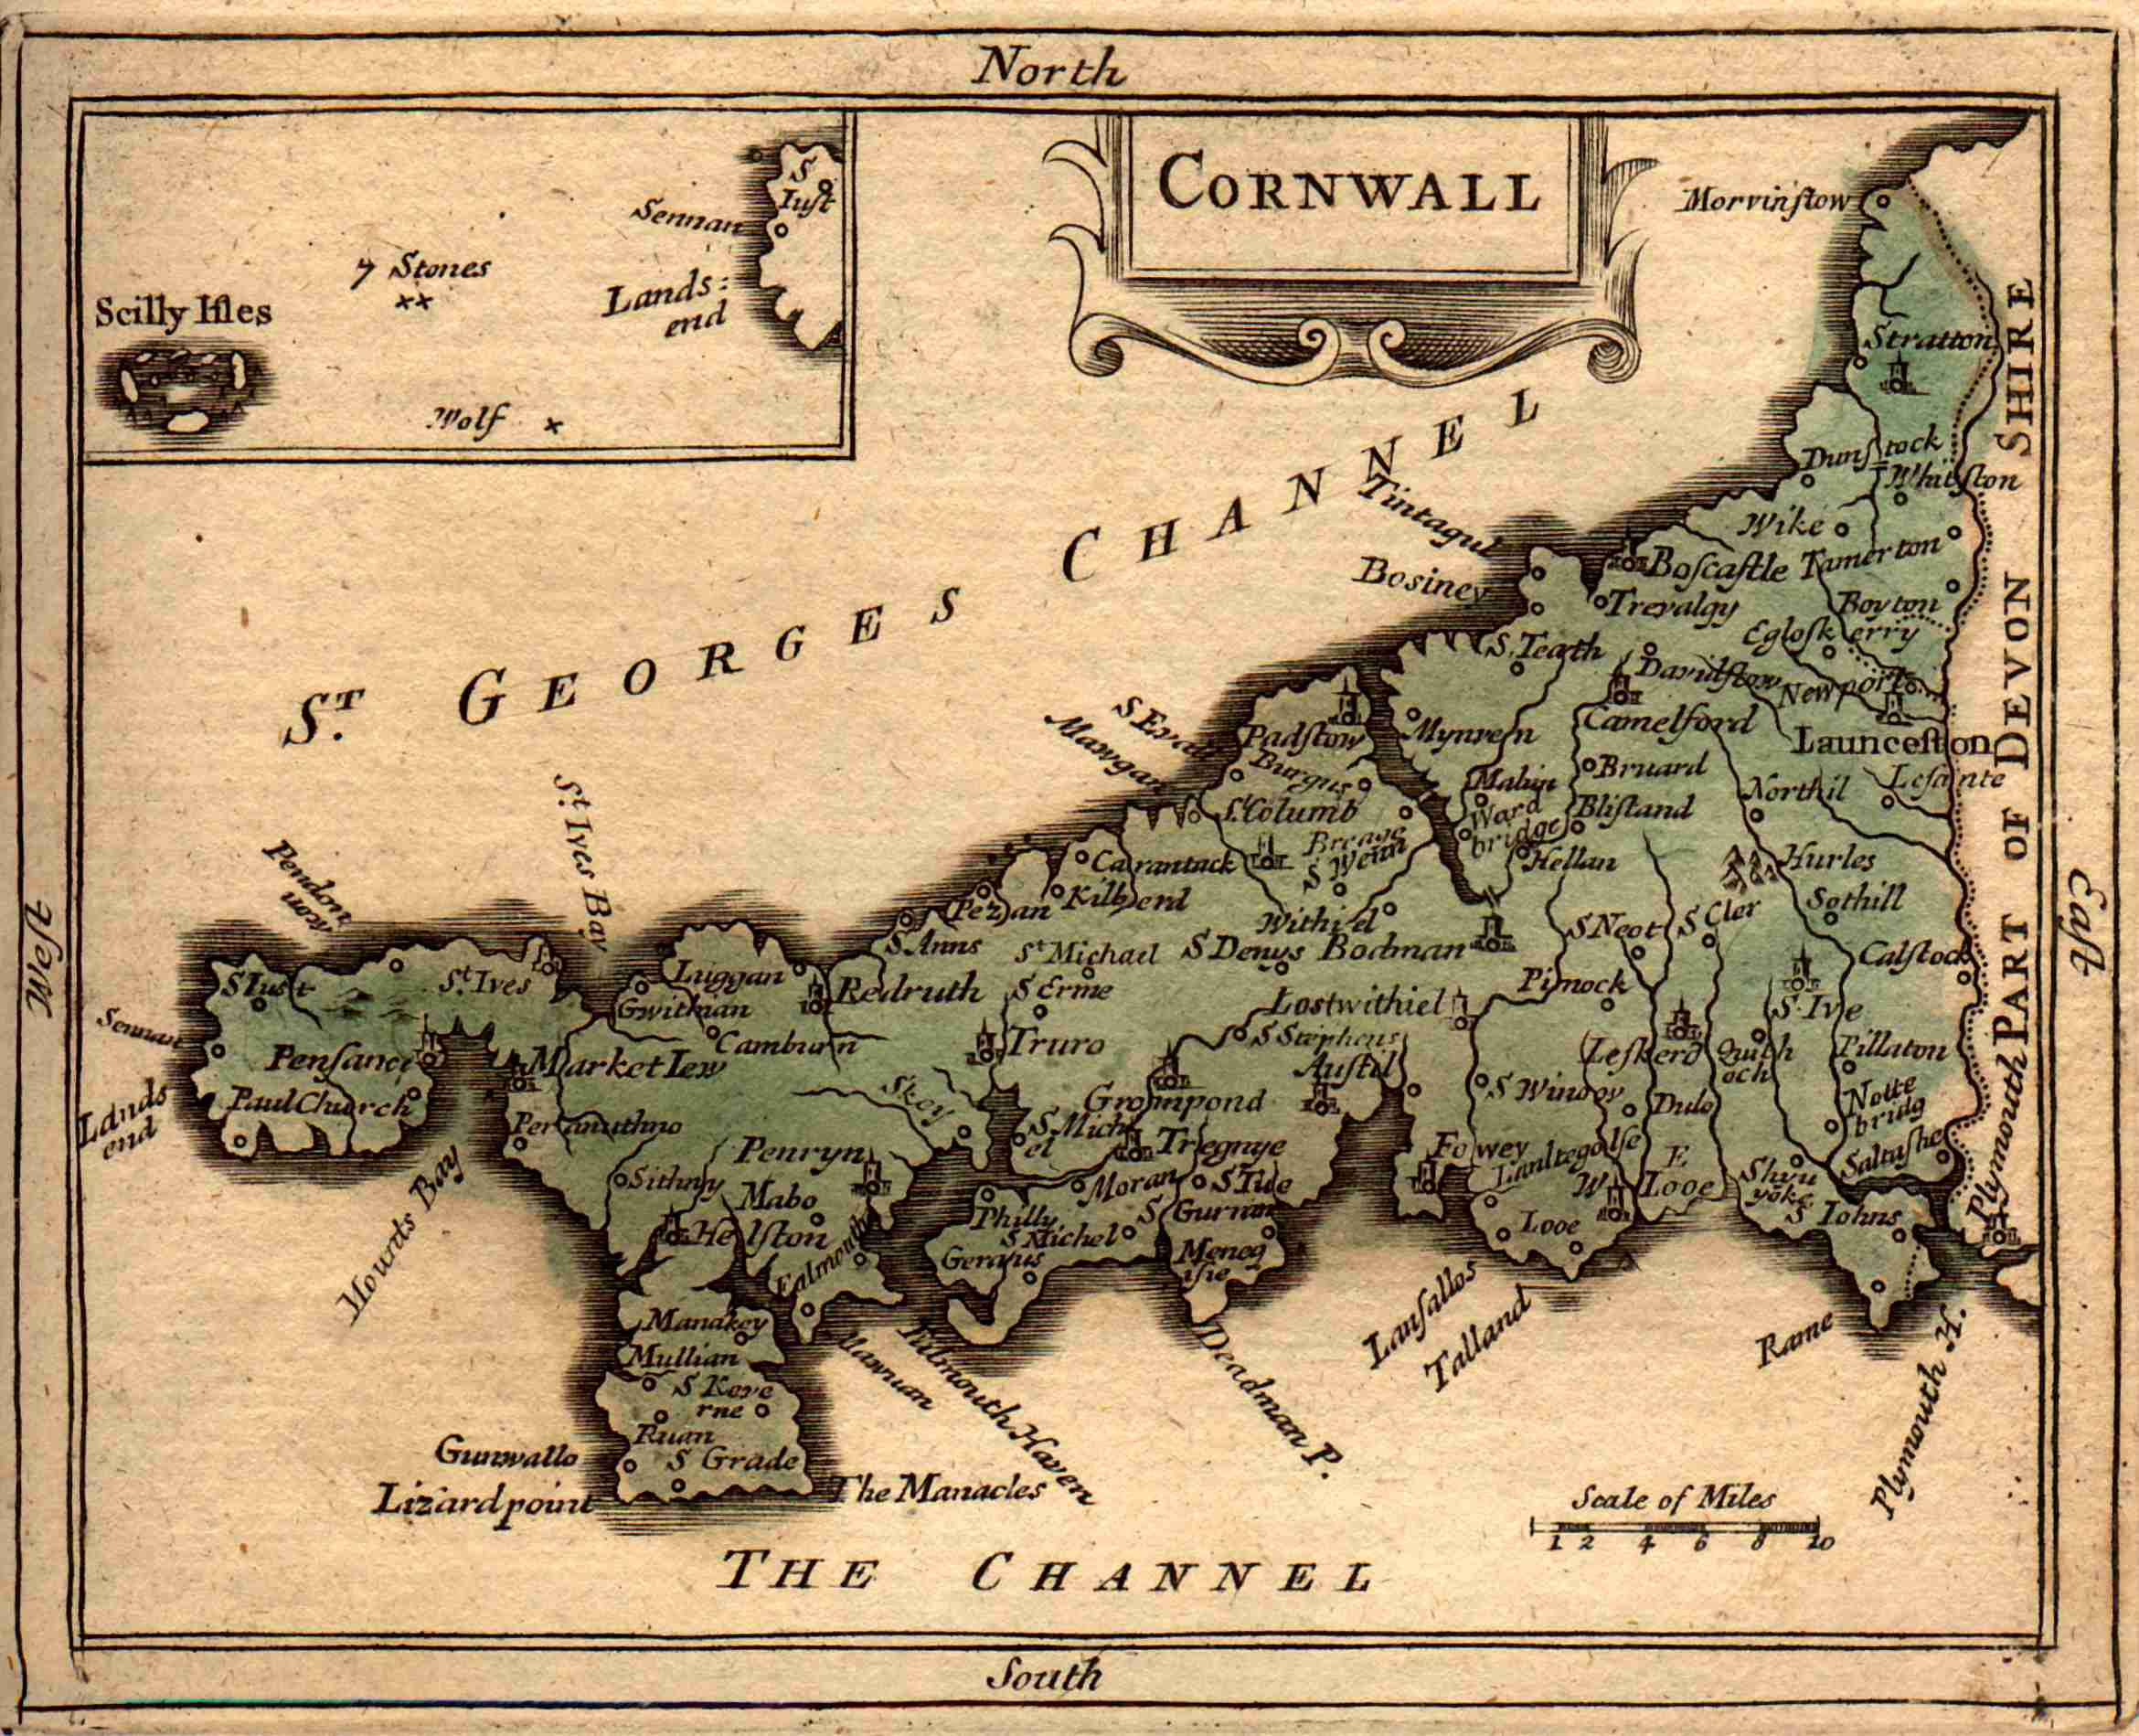 Cornwall Map Images File:grose-map-cornwall-q80